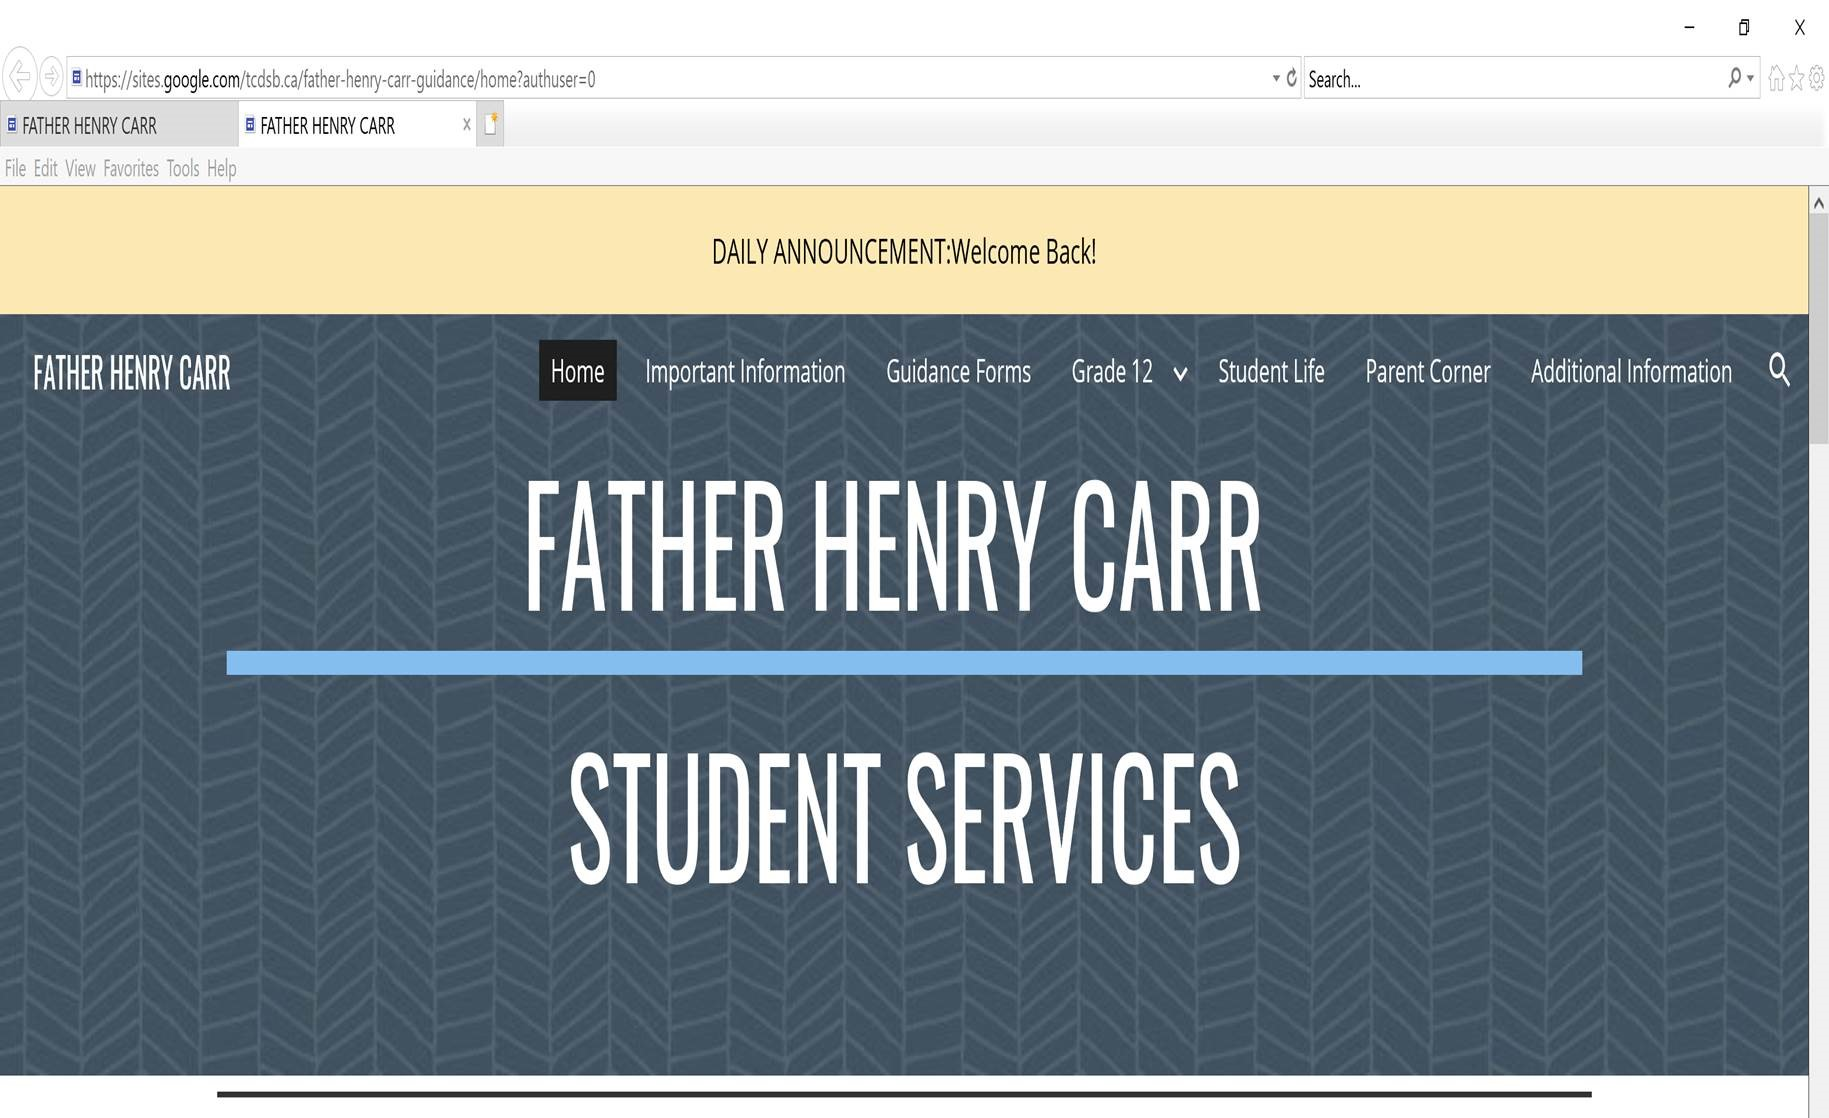 Father Henry Carr Student Services